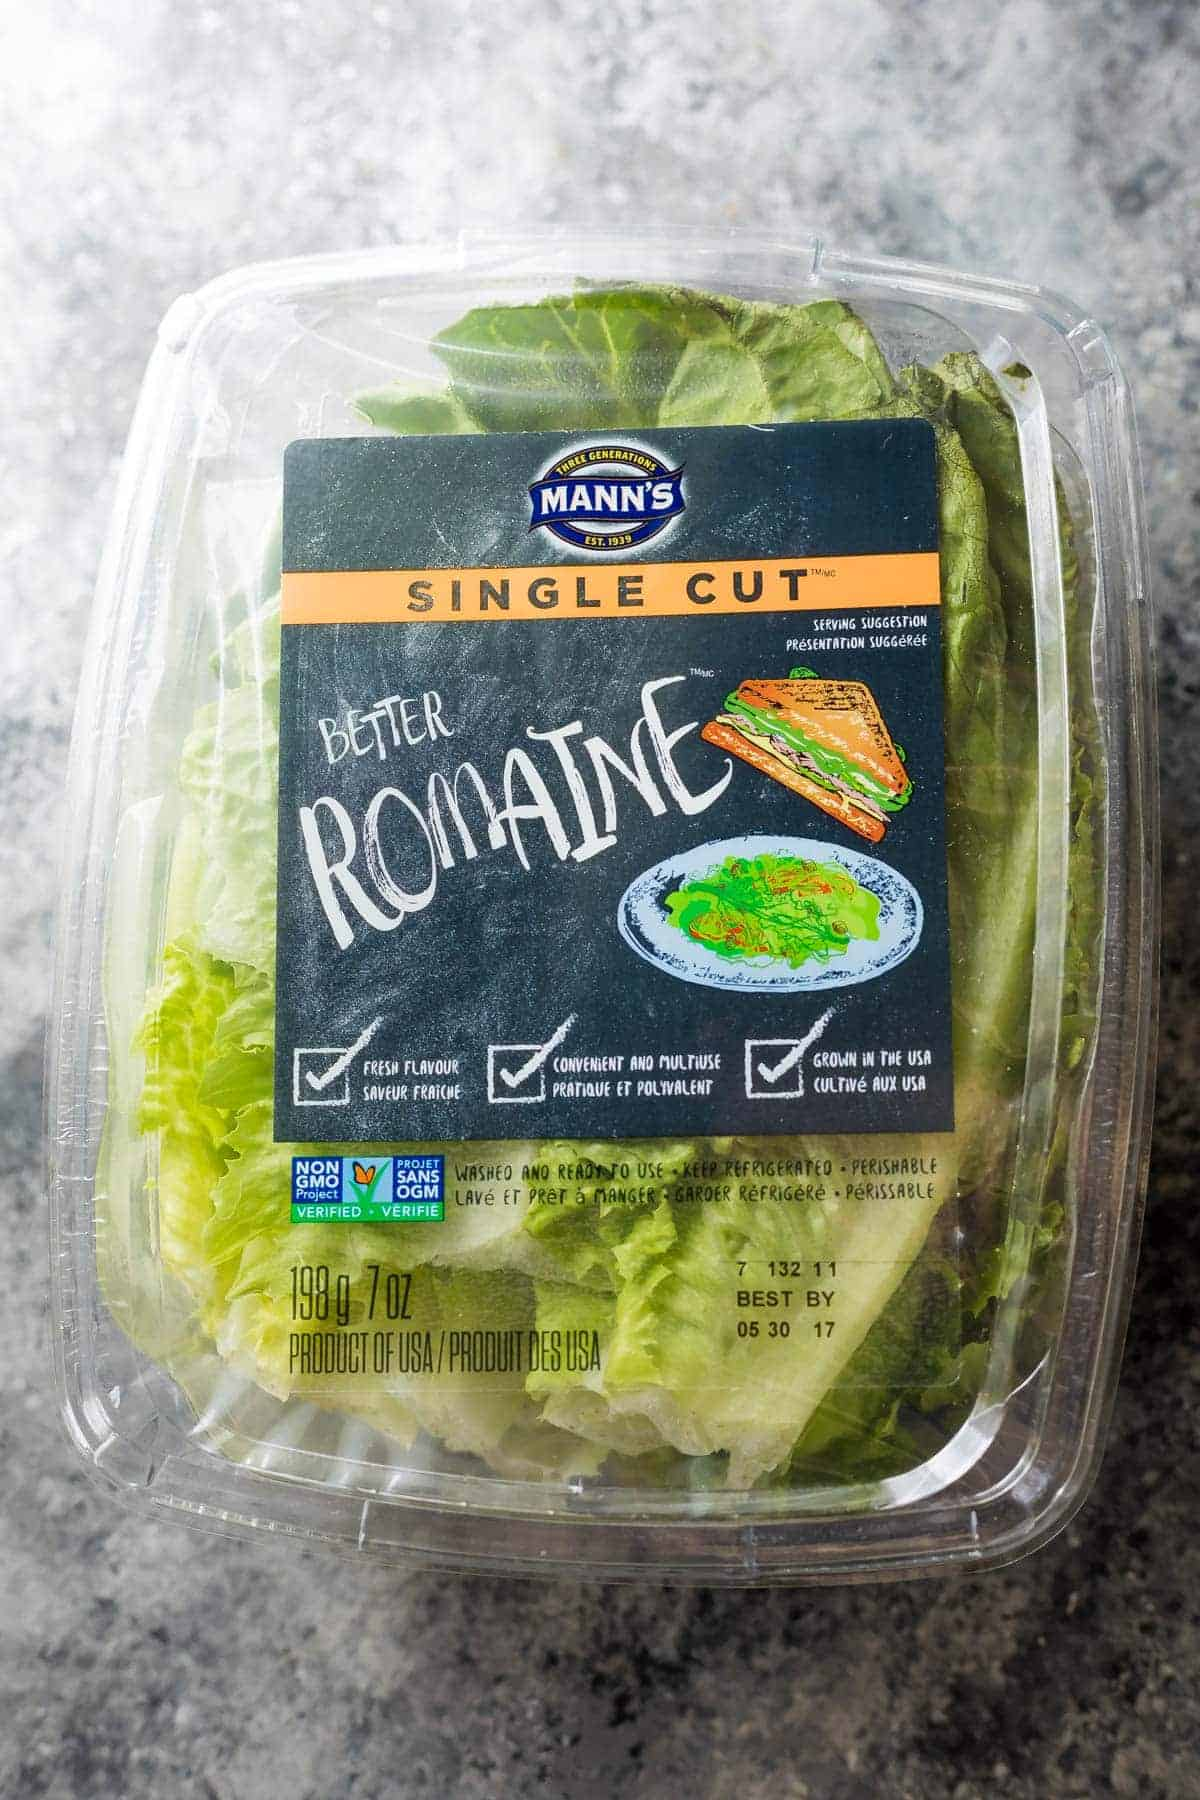 Better romaine lettuce for the lettuce wraps recipe